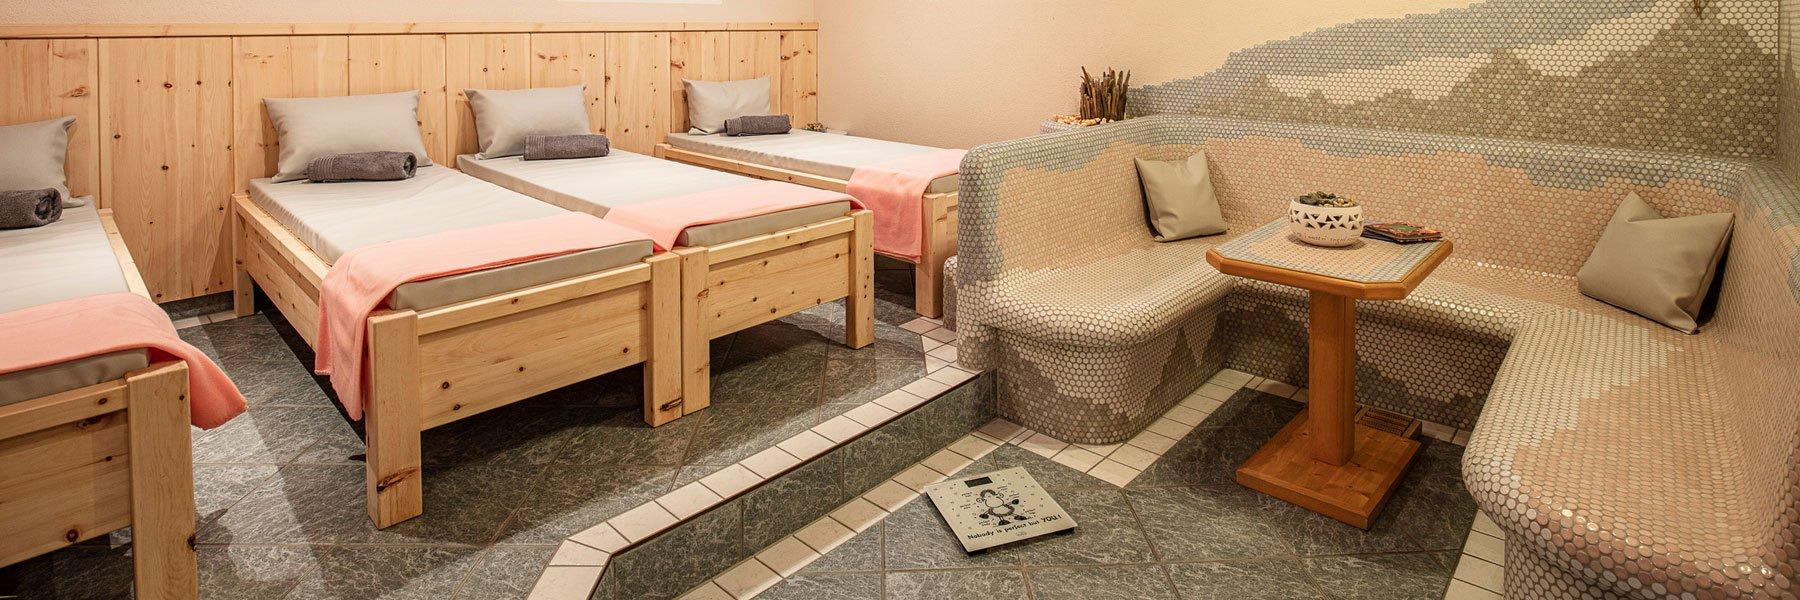 Wellnessbereich in der Sportpension Rubin